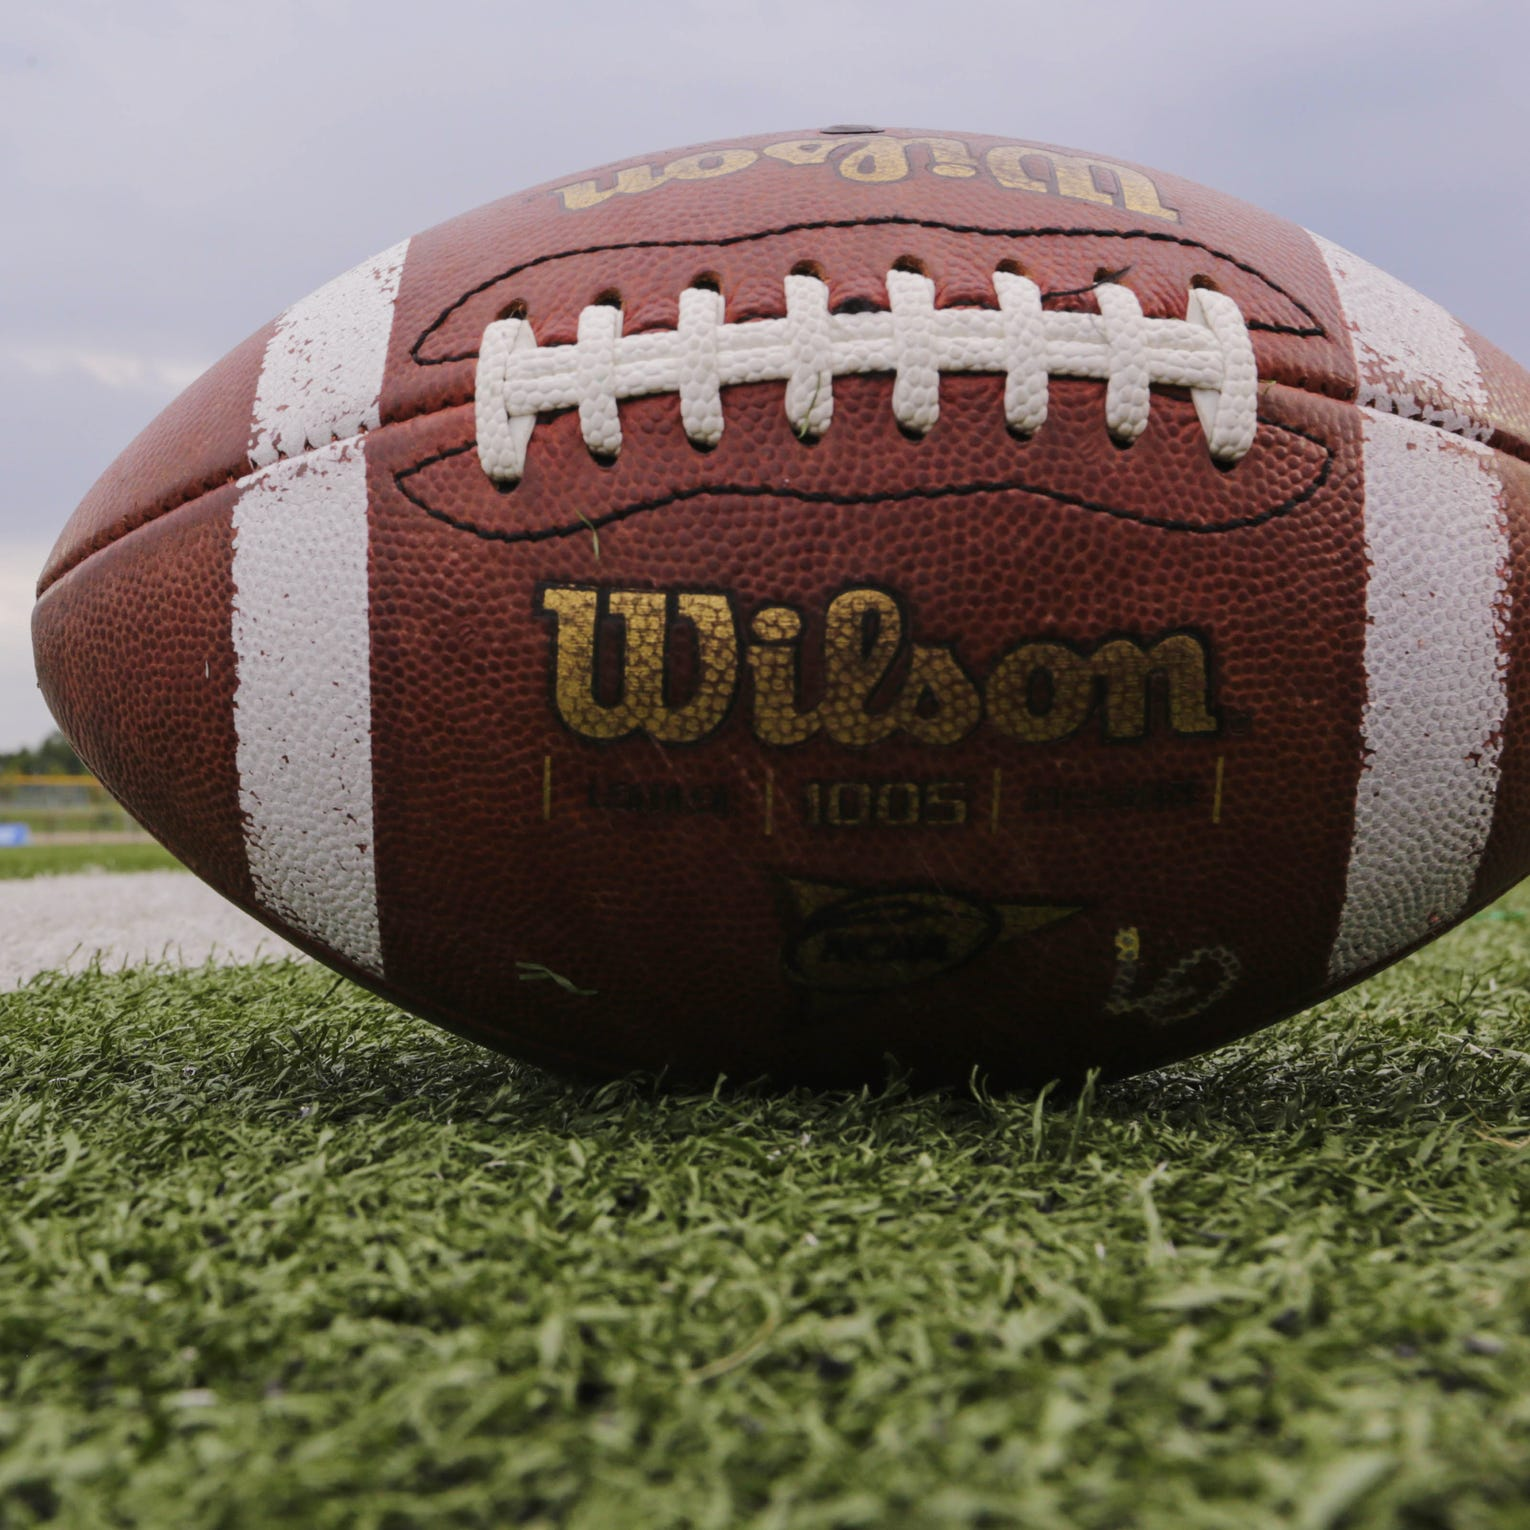 With less than 20 players in uniform, Detroit Pershing forfeits to King